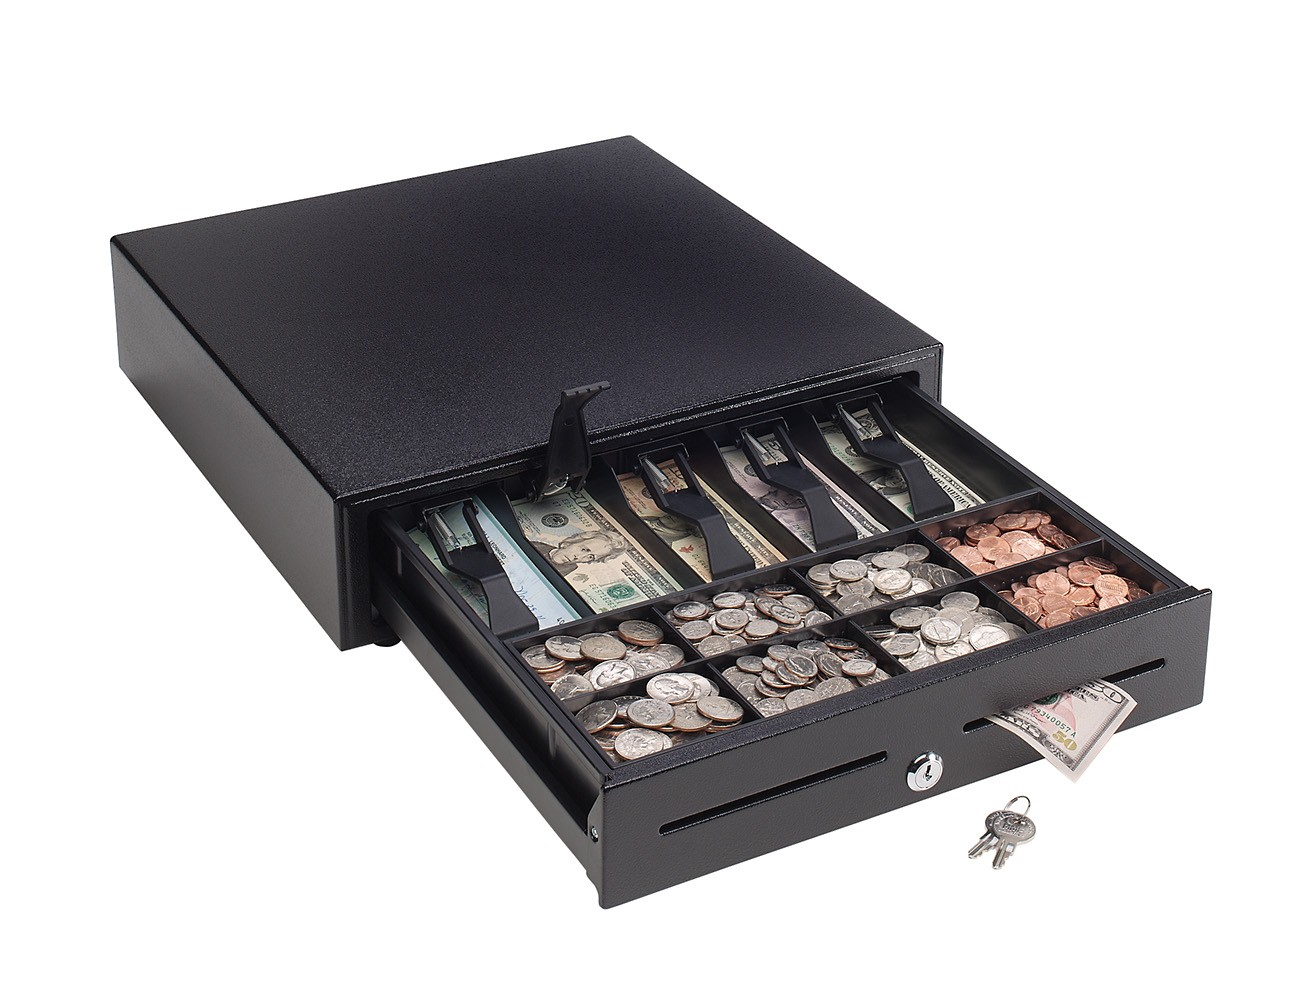 p qualilty notes key bill money cash slot open cashbox box pos drawers auto photo cashier drawer